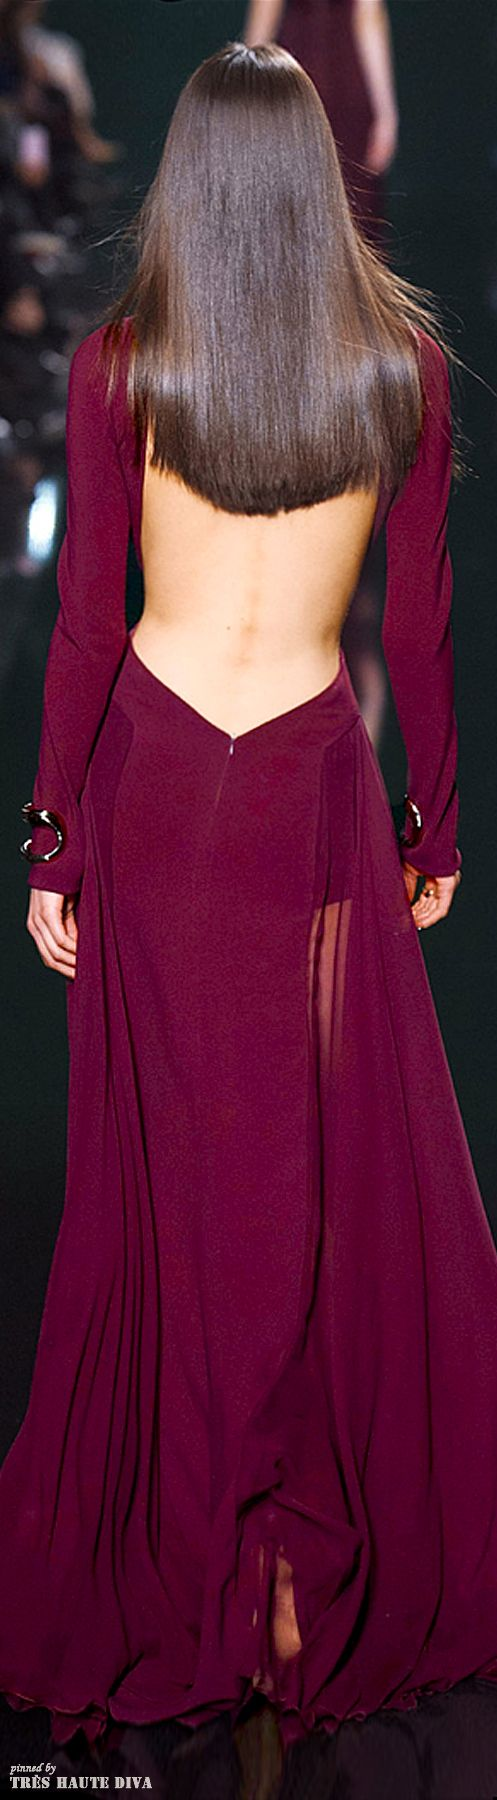 Elie Saab Fall/Winter 2014 #RTW #Runway #ElieSaab